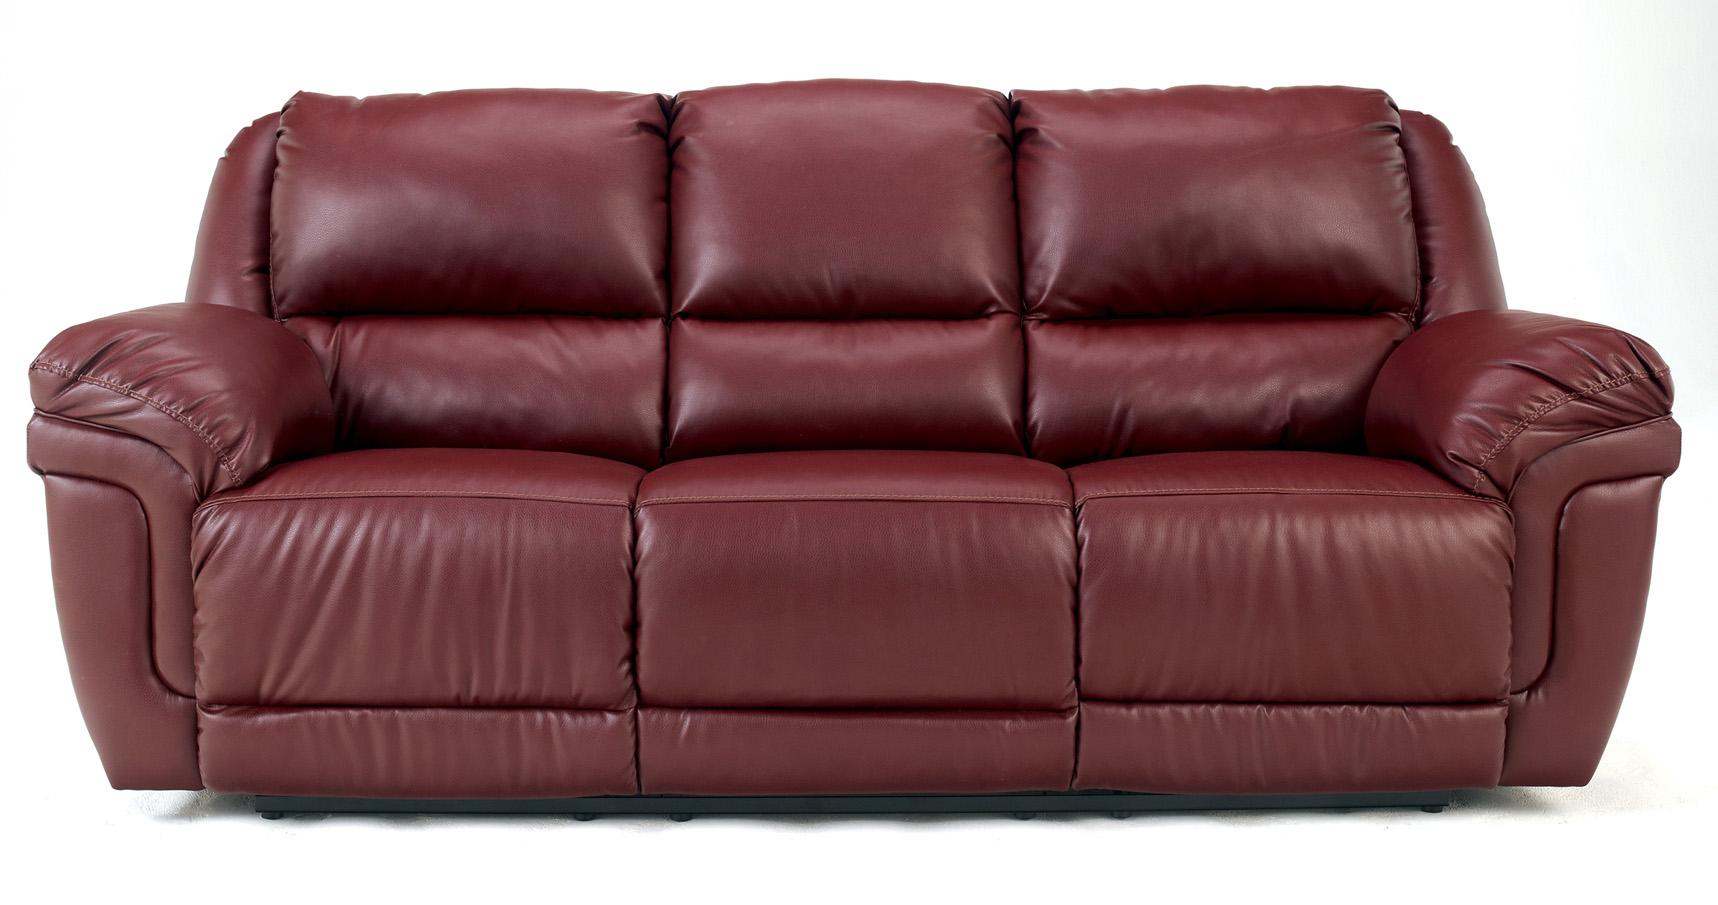 Signature Design by Ashley Magician DuraBlend - Garnet Reclining Sofa w/ Drop Down Table & Massage - Item Number: 7610089